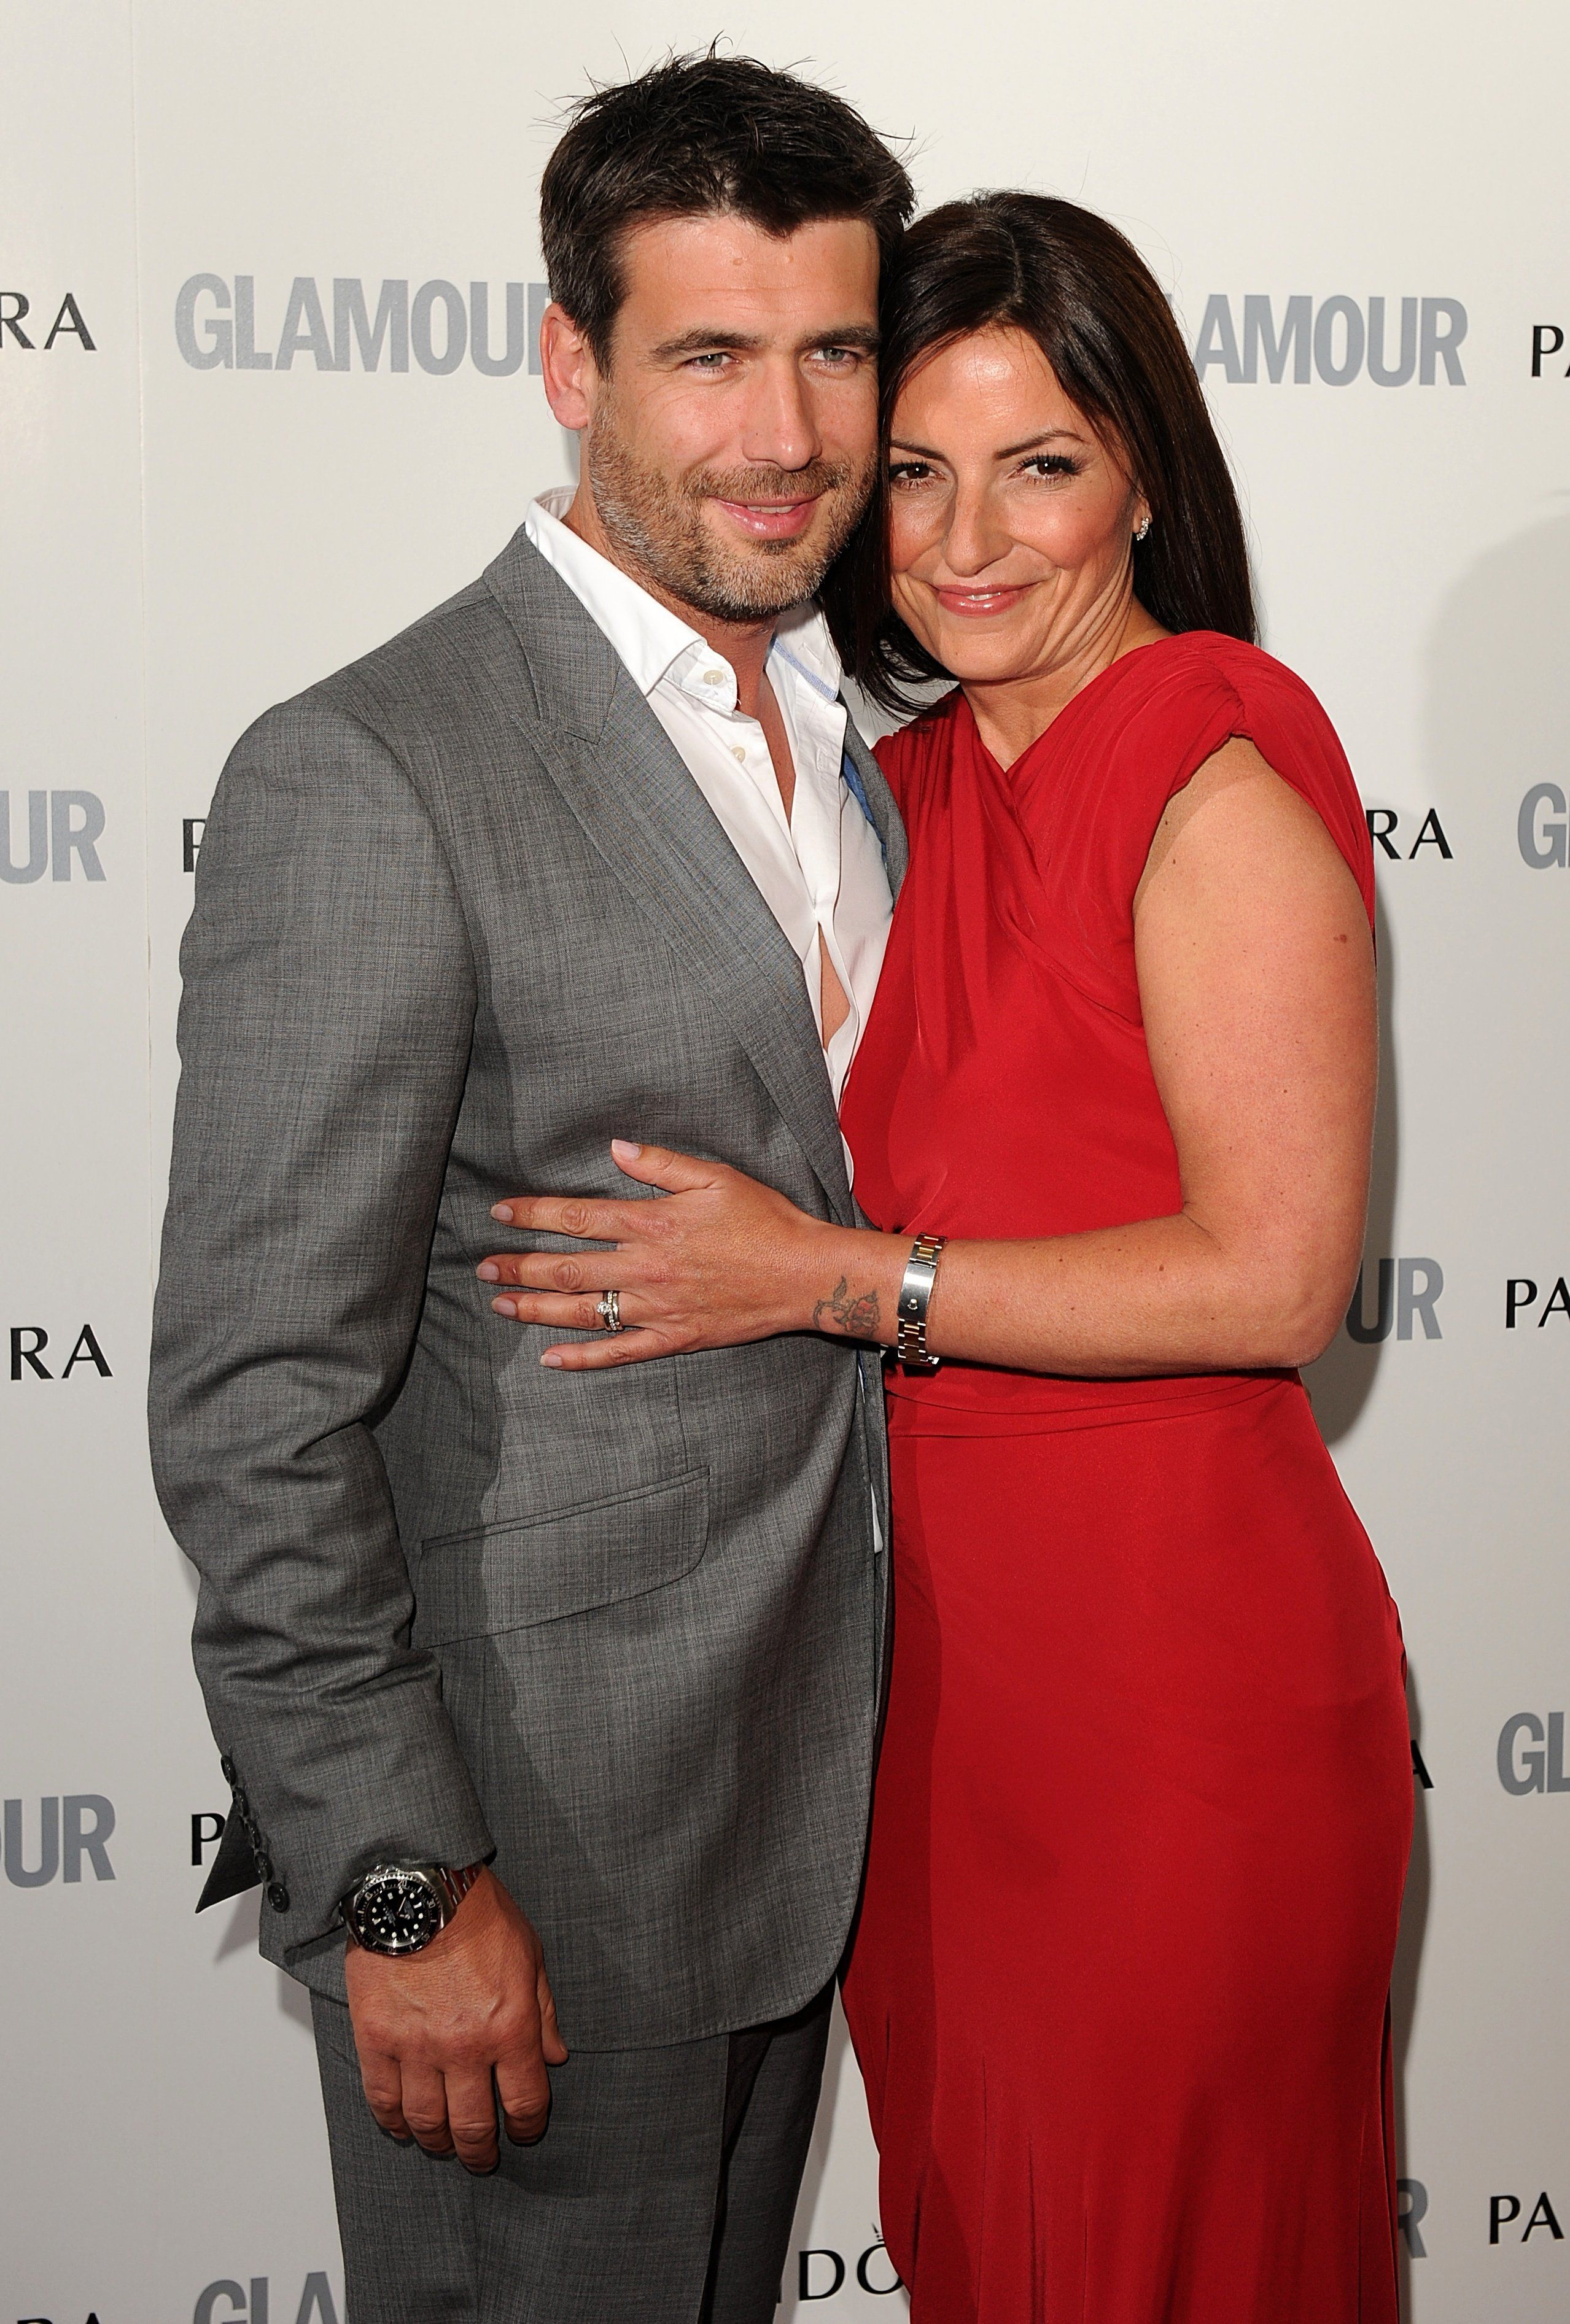 Davina McCall Slams 'Quickie Divorce' Rumours